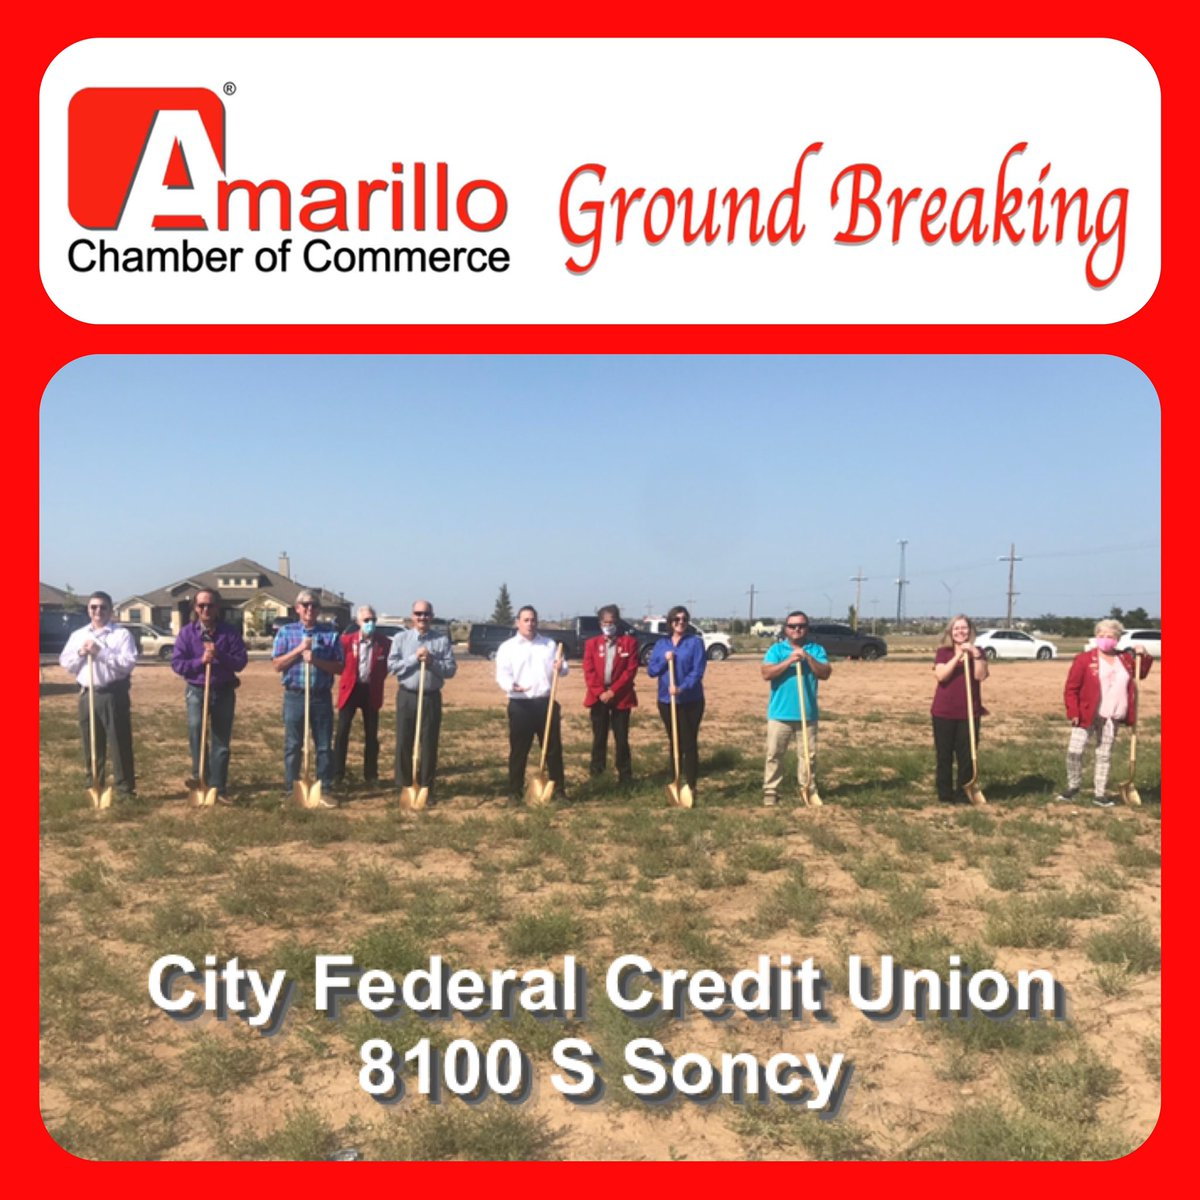 Congrats to City Federal Credit Union on their ground breaking today.